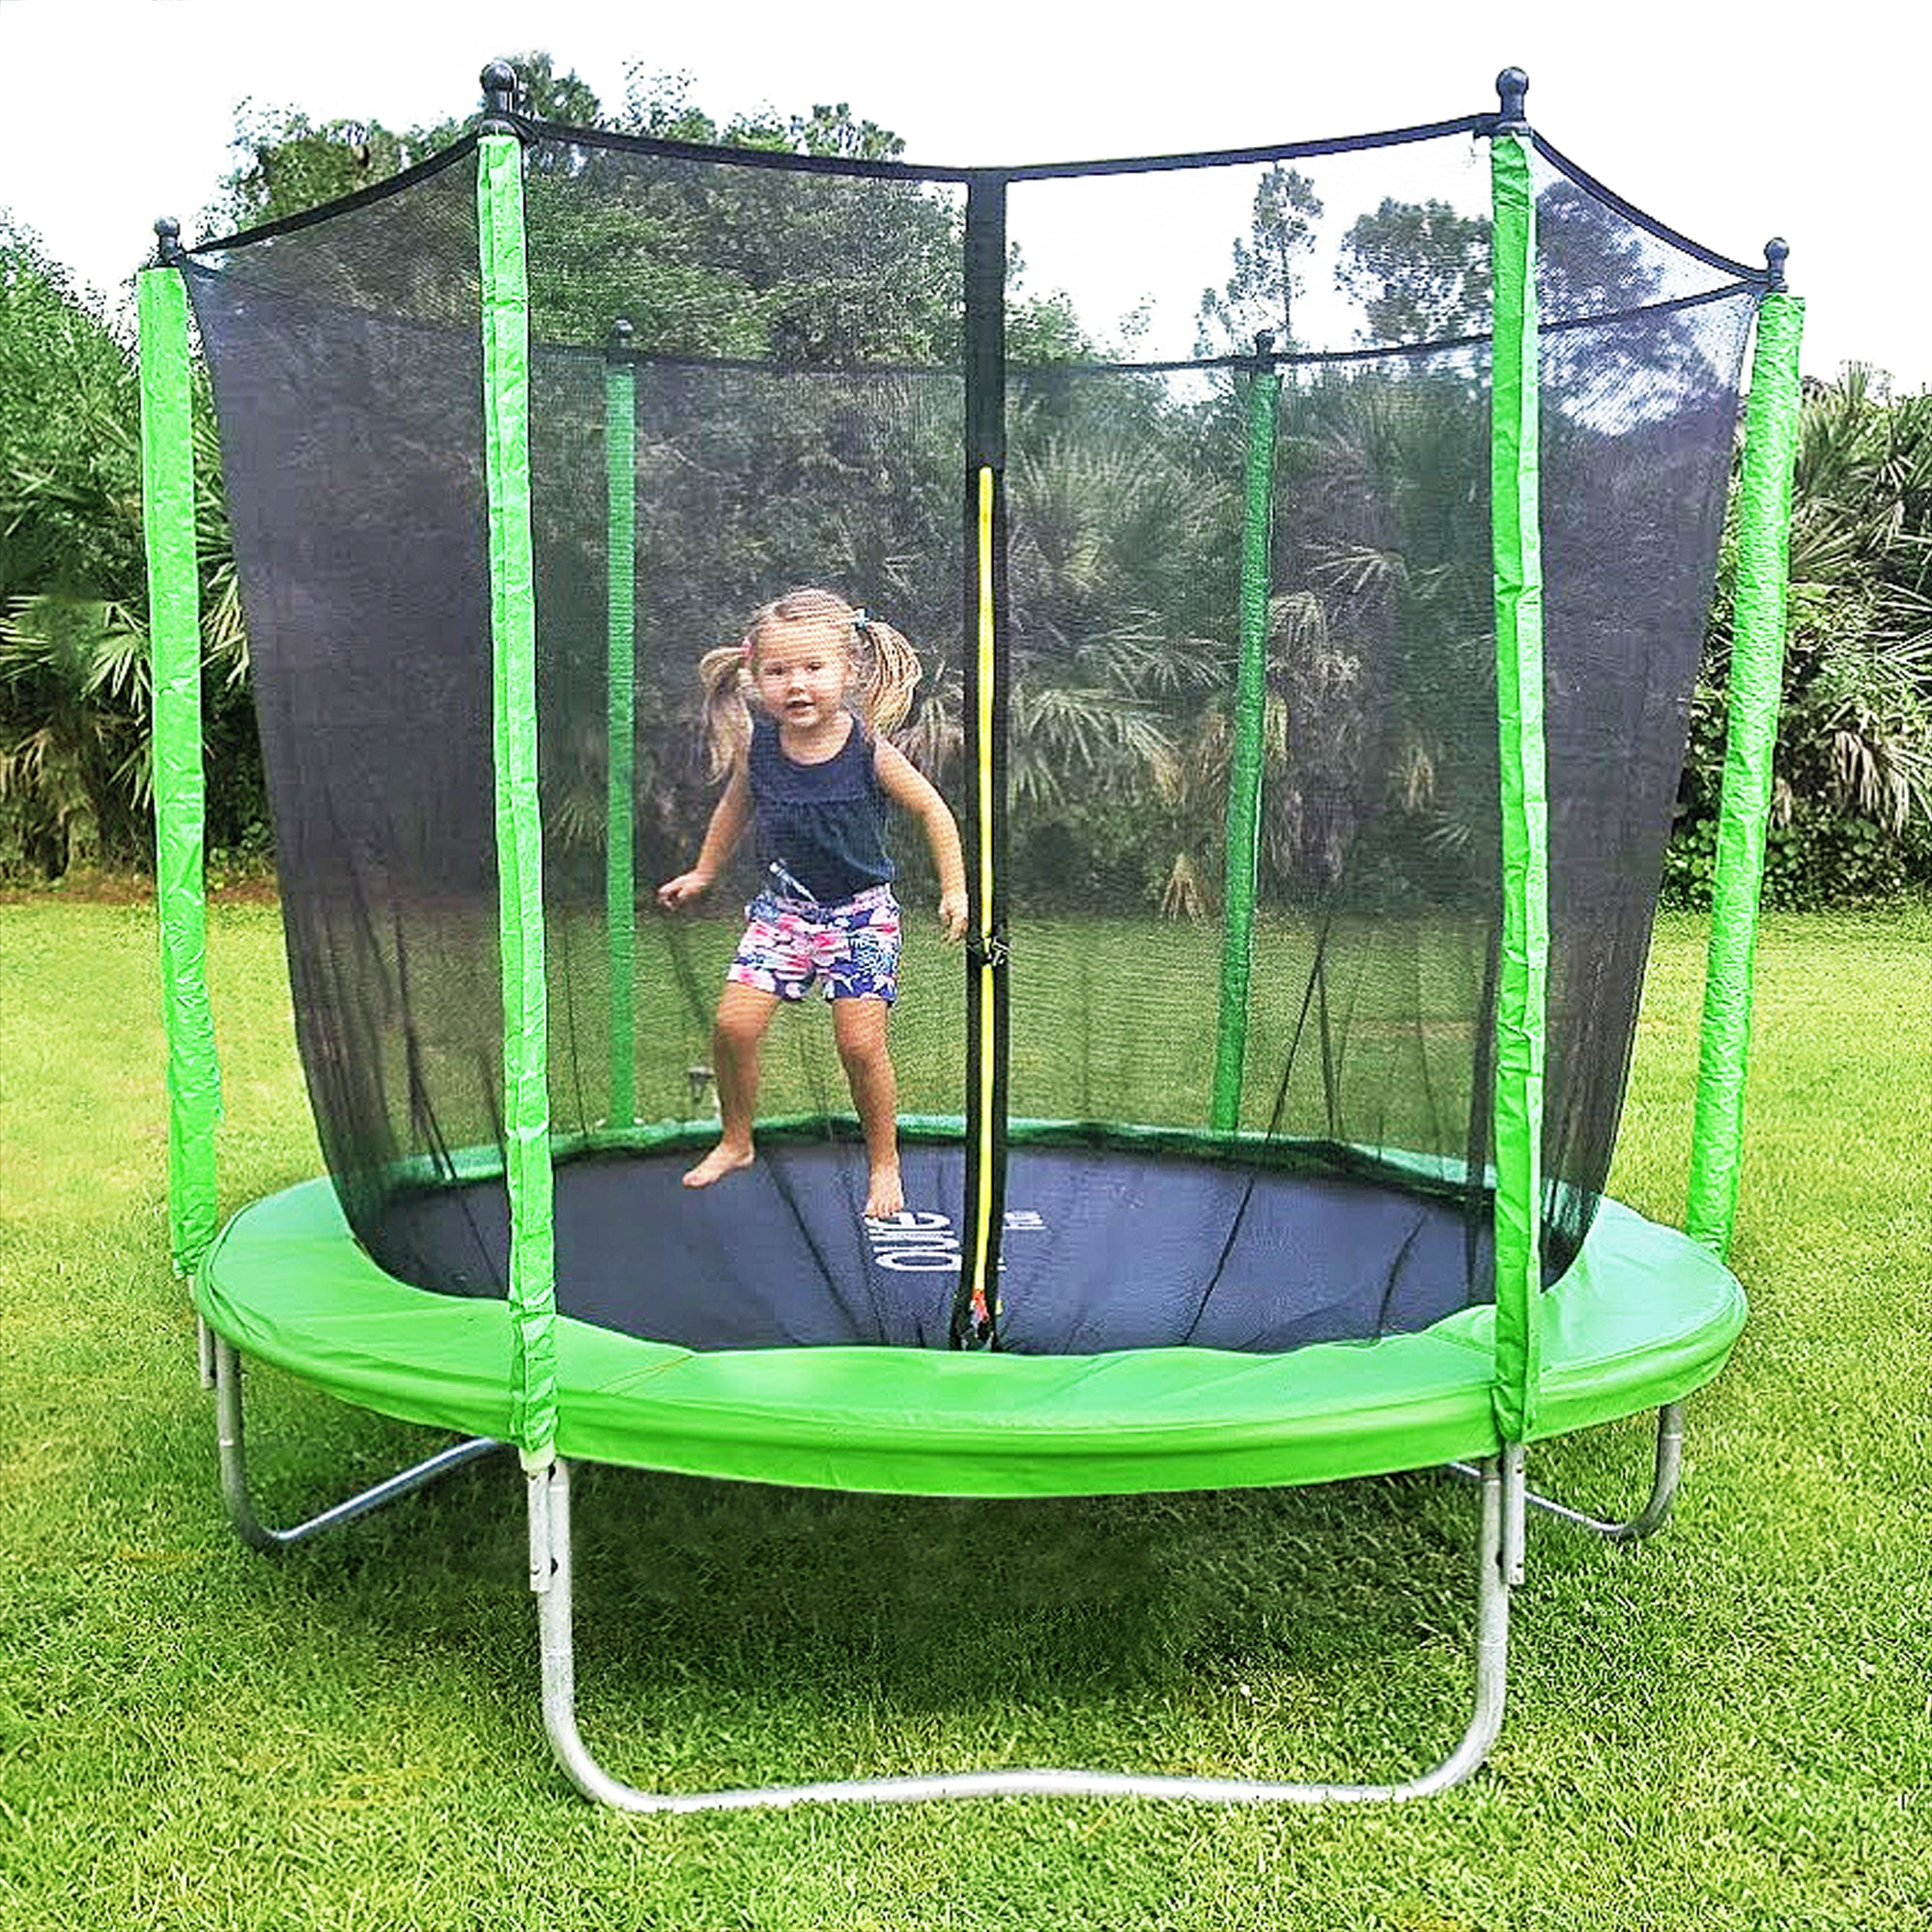 Dura Bounce Outdoor Trampoline With Enclosure, 8-Foot